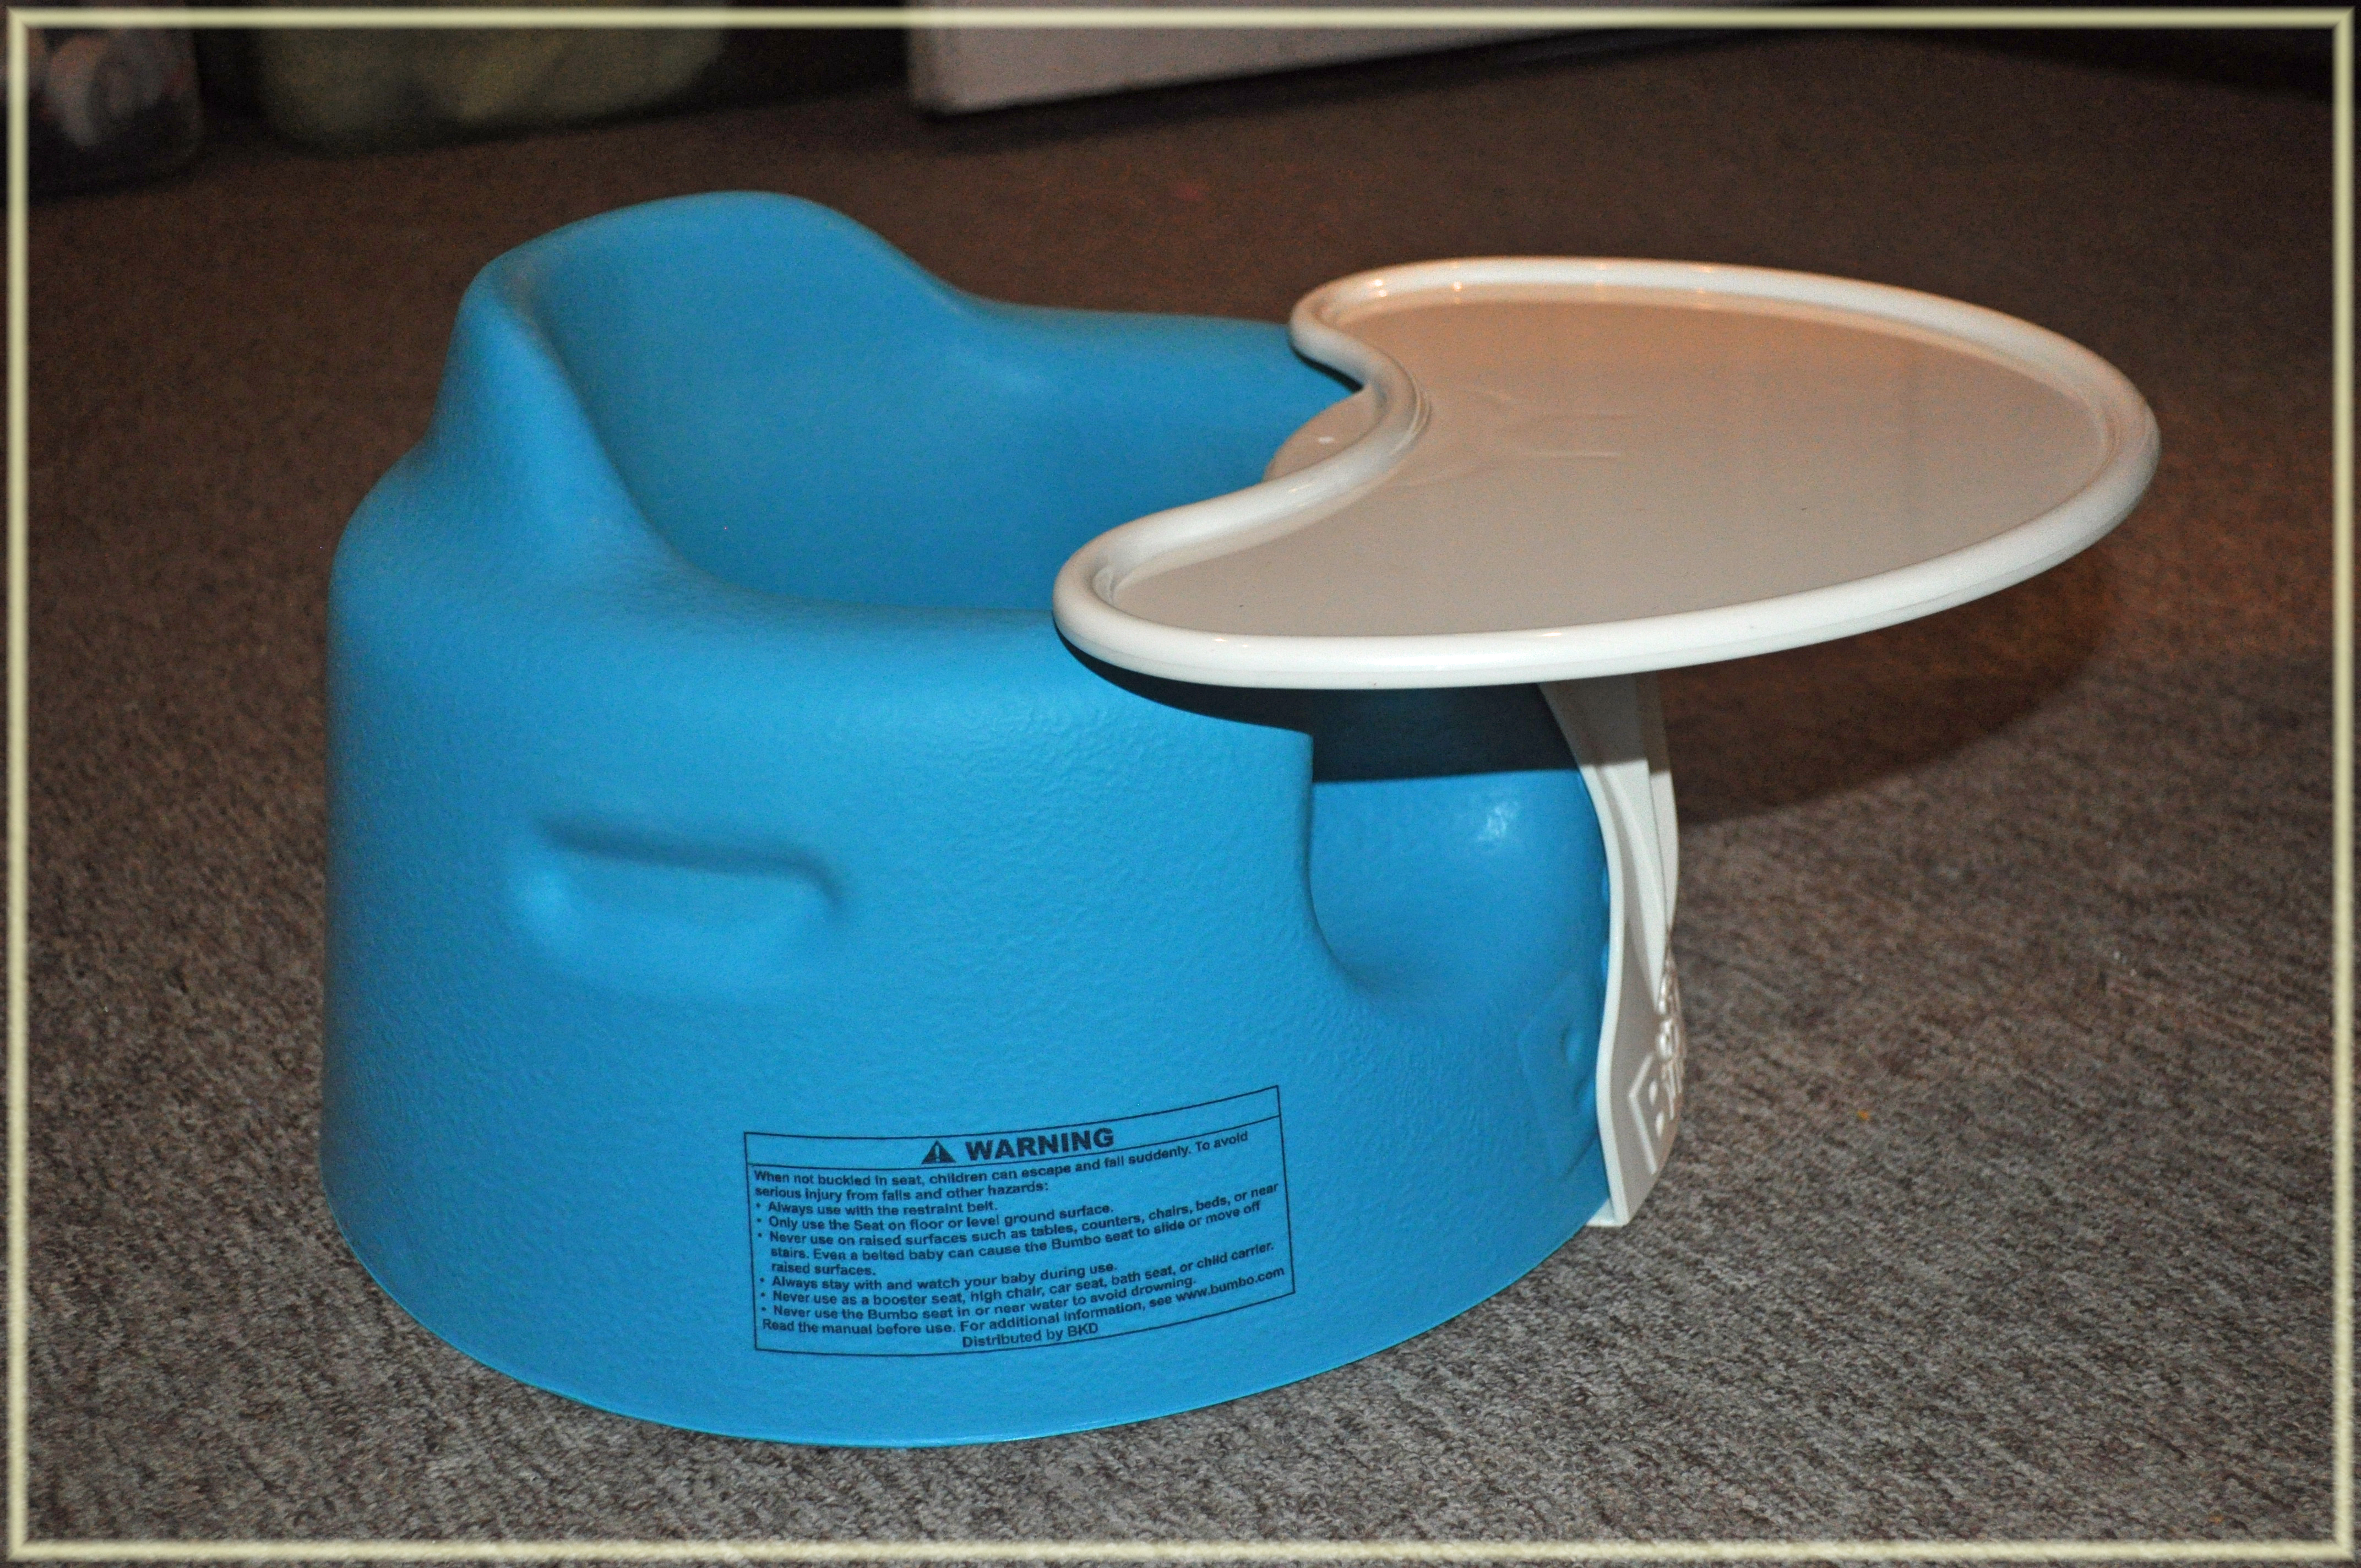 babies sit up chair kenny chesney blue rum hat baby must haves | bumbo floor seat with play tray - mommy's fabulous finds